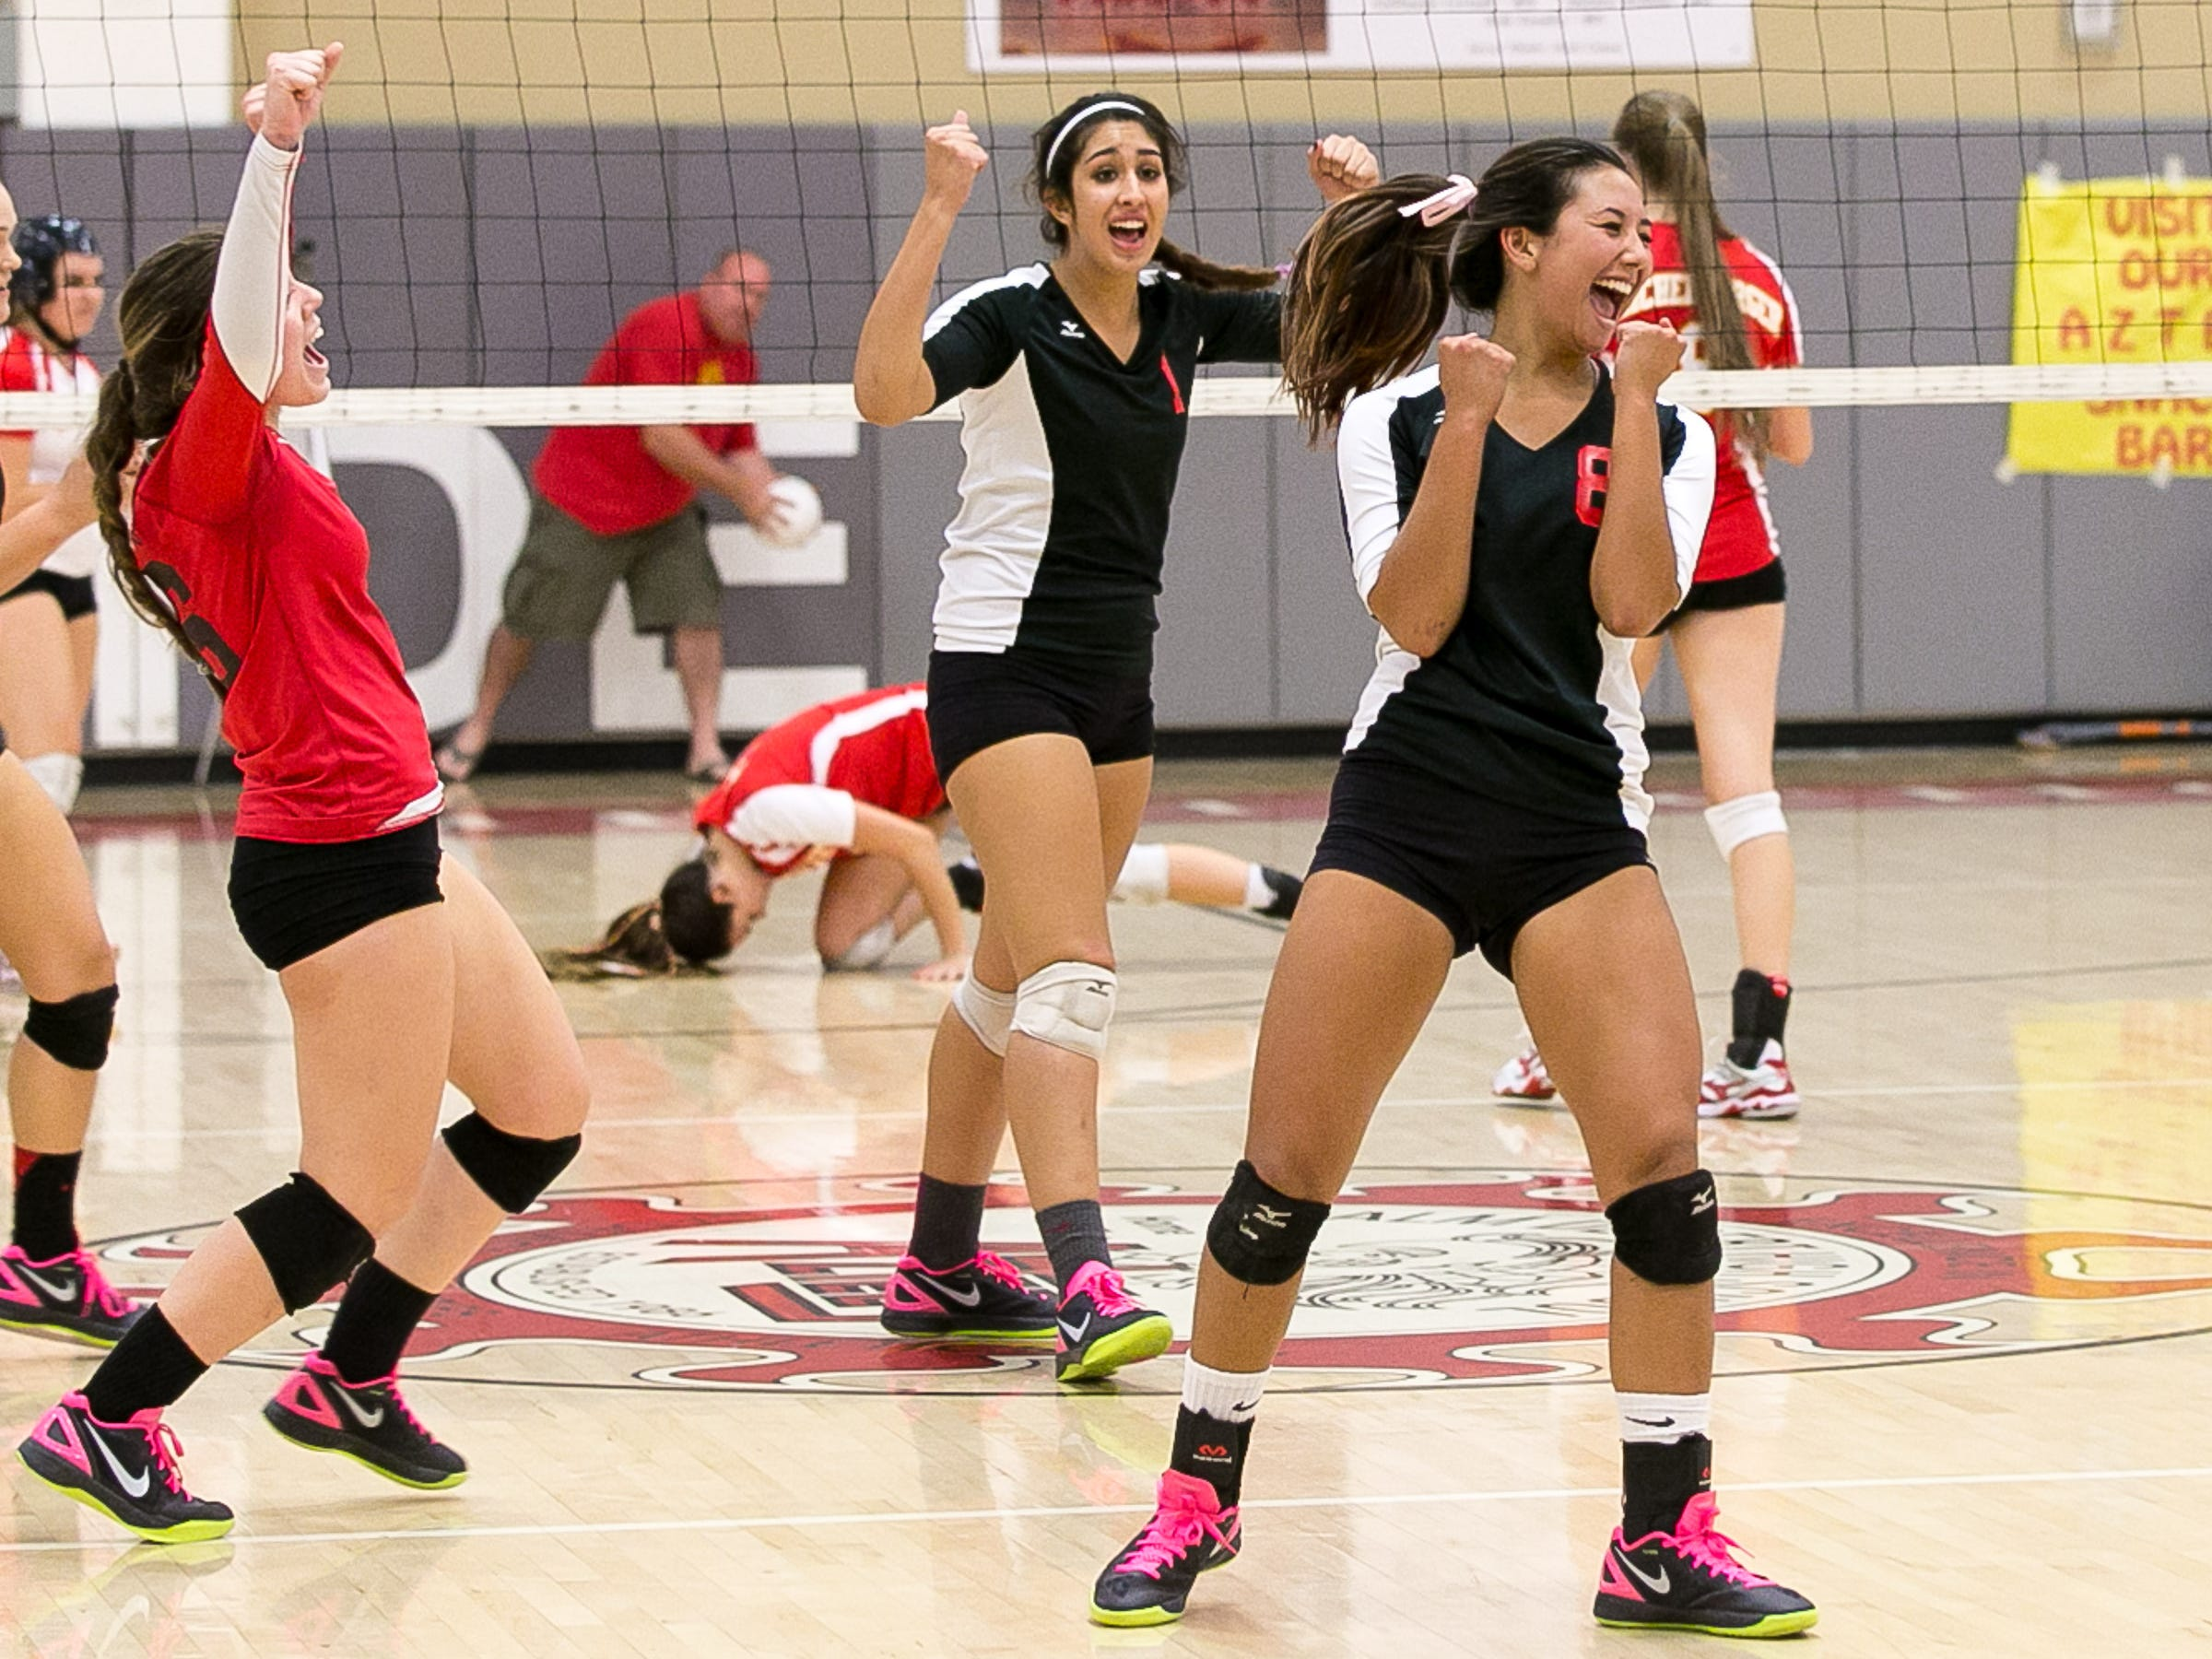 Palm Springs Asia O'Neil (right) reacts as she scores a point to force the match to a tiebreaker against Palm Desert on Thursday. Palm Springs won 3-2.